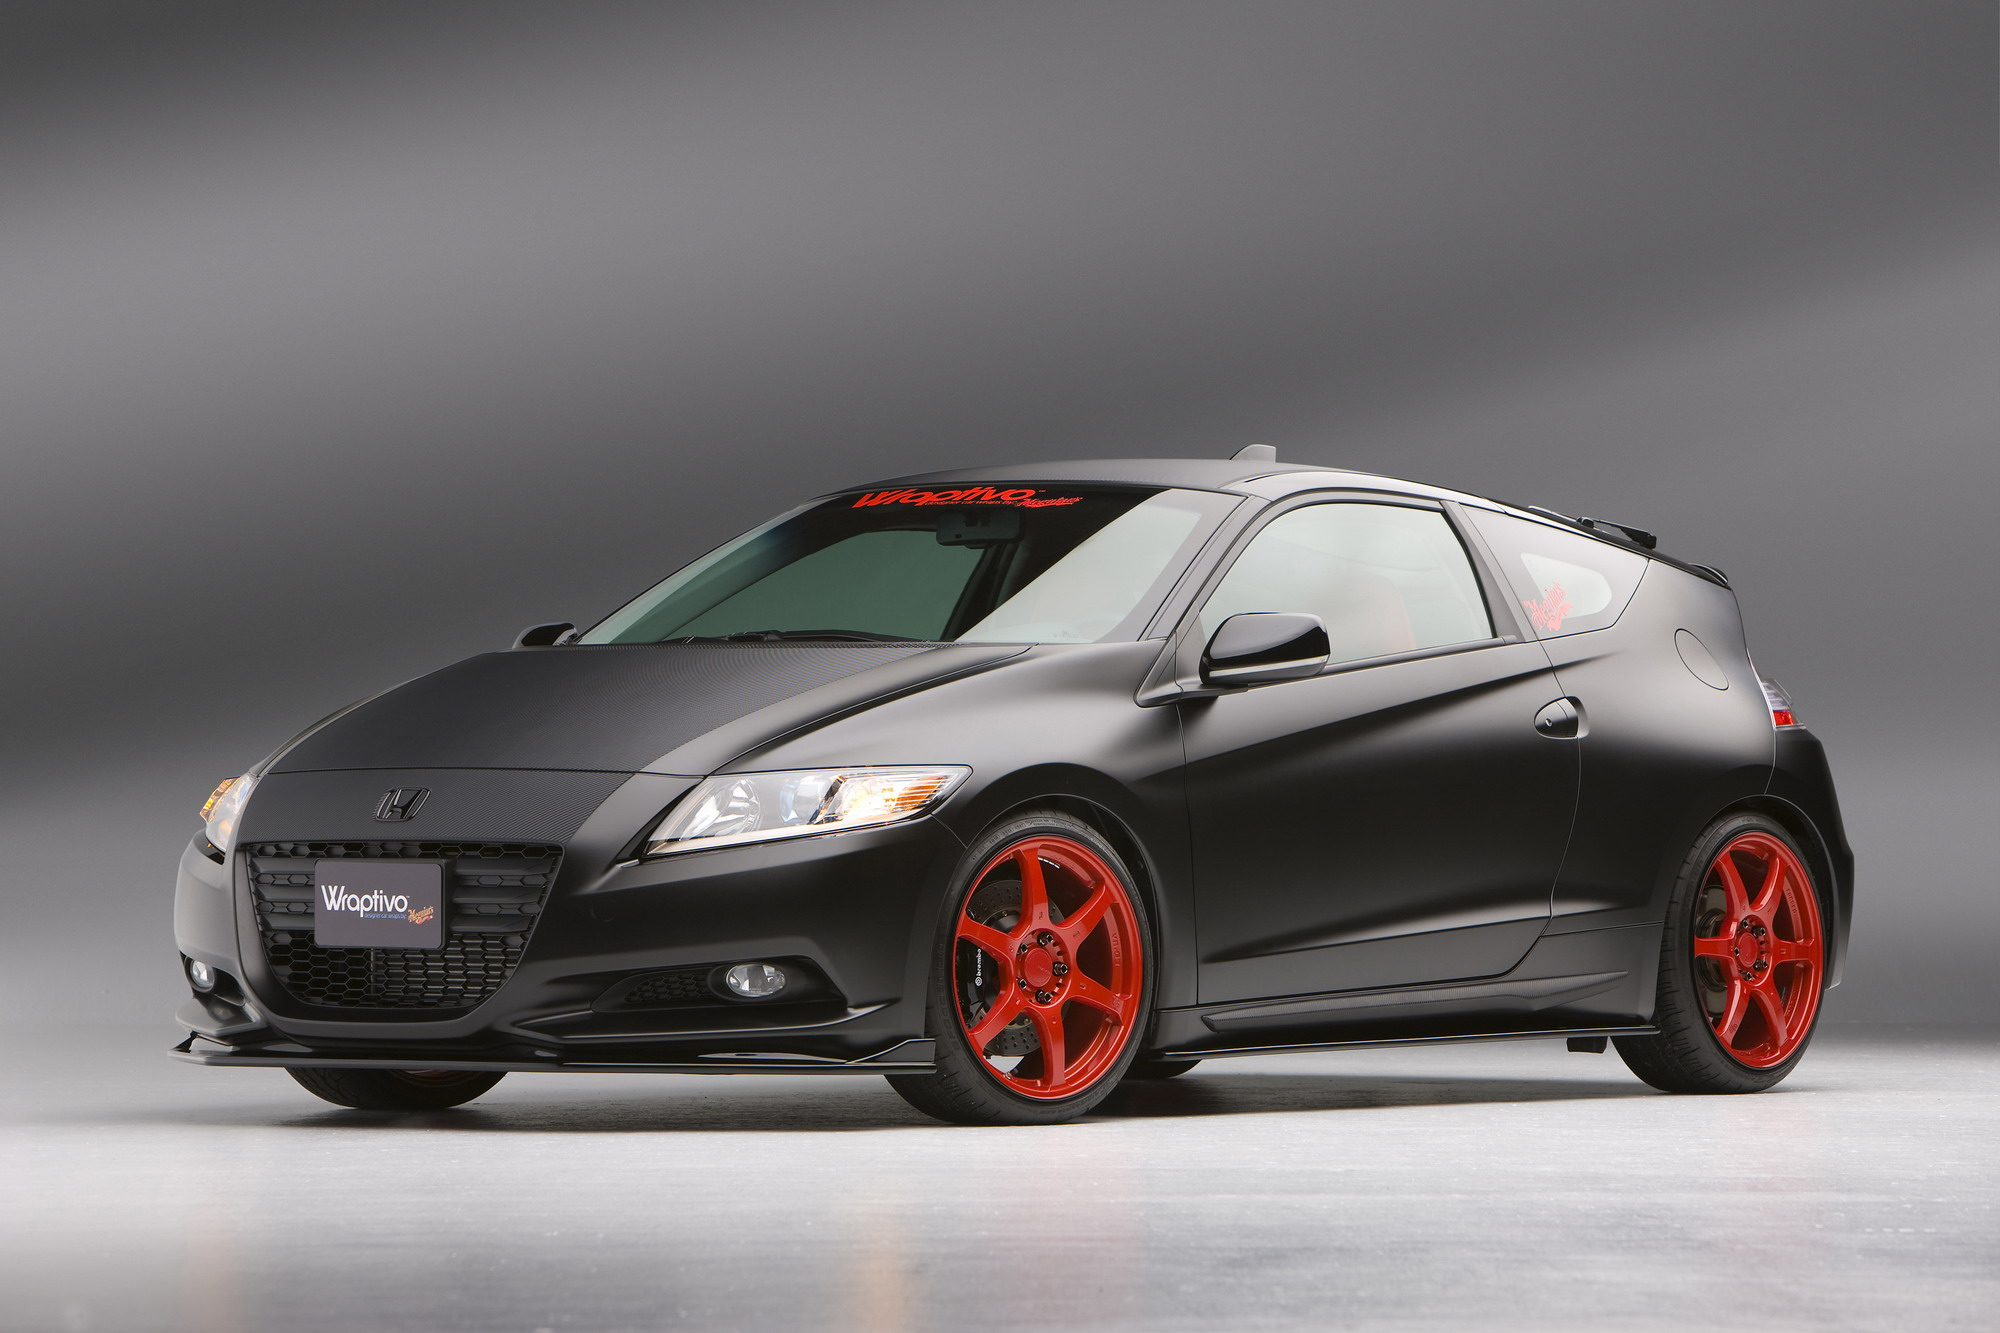 2011 honda cr z type f concept by wraptivo top speed. Black Bedroom Furniture Sets. Home Design Ideas